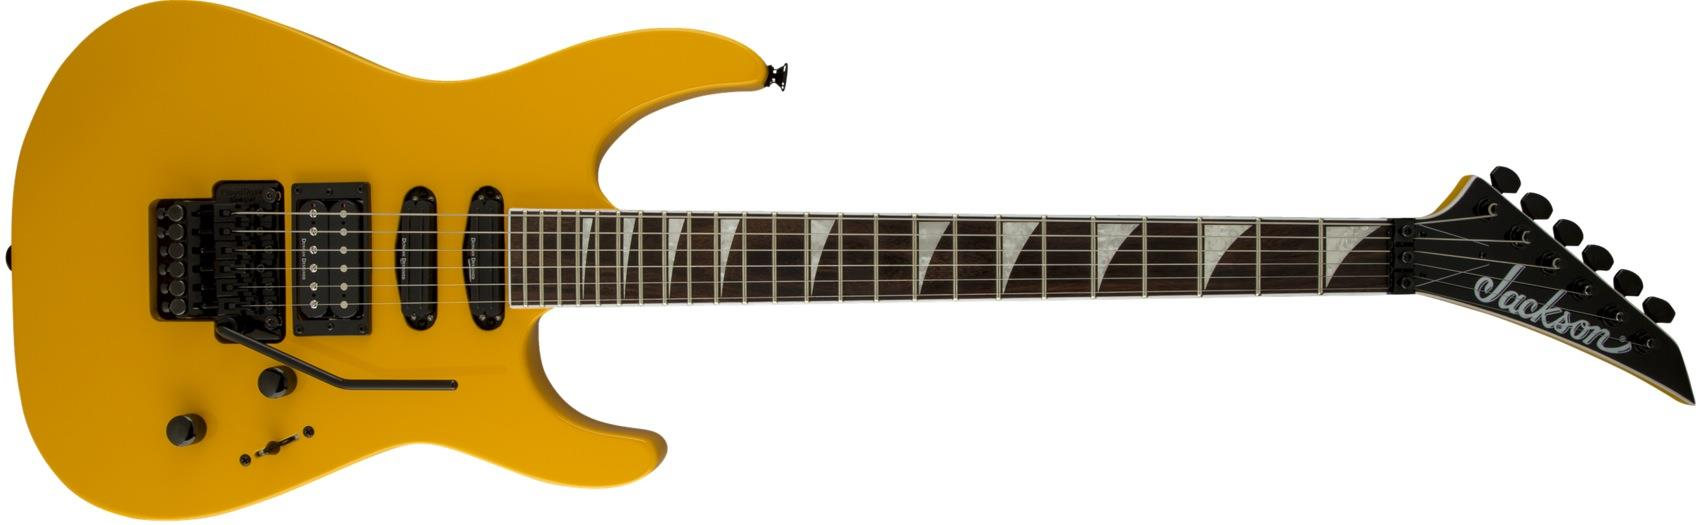 Jackson SL3X Soloist (Taxi Cab Yellow) Electric Guitars